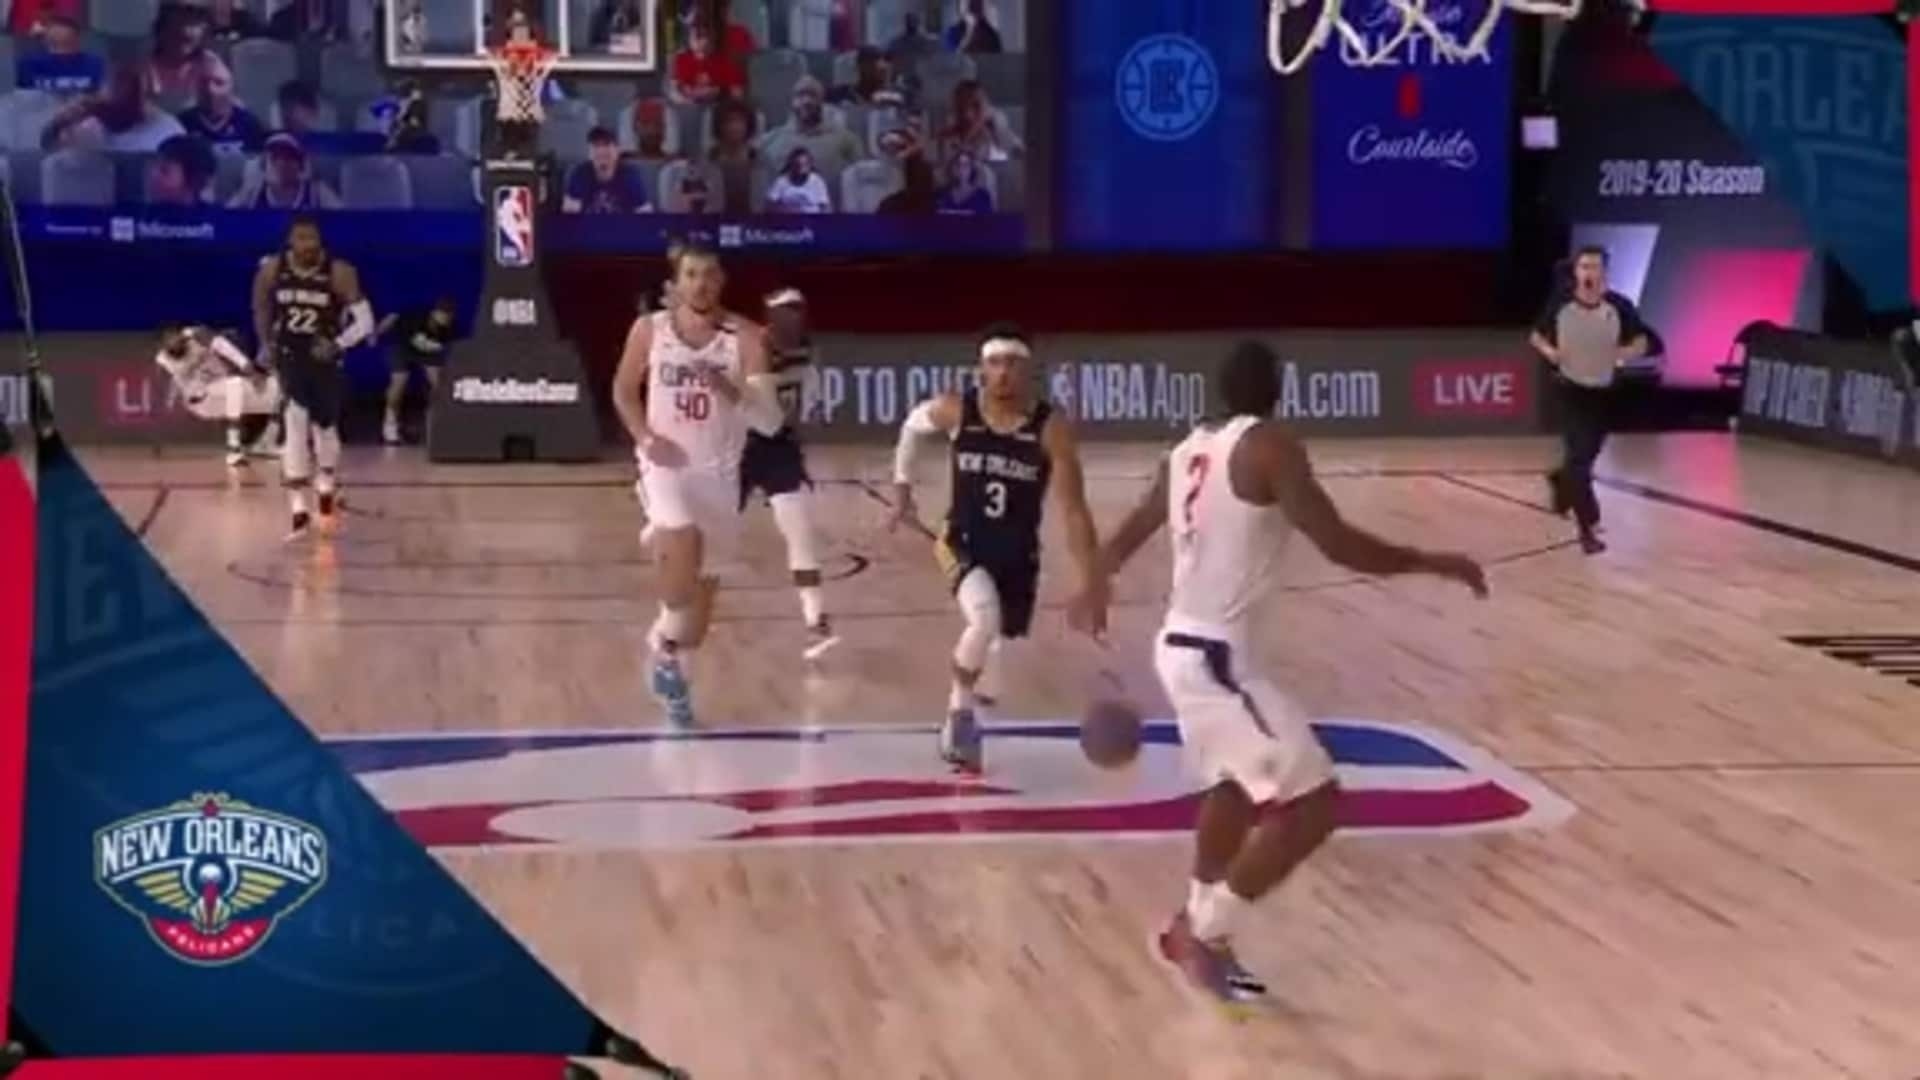 Pelicans Highlights: Josh Hart goes coast to coast